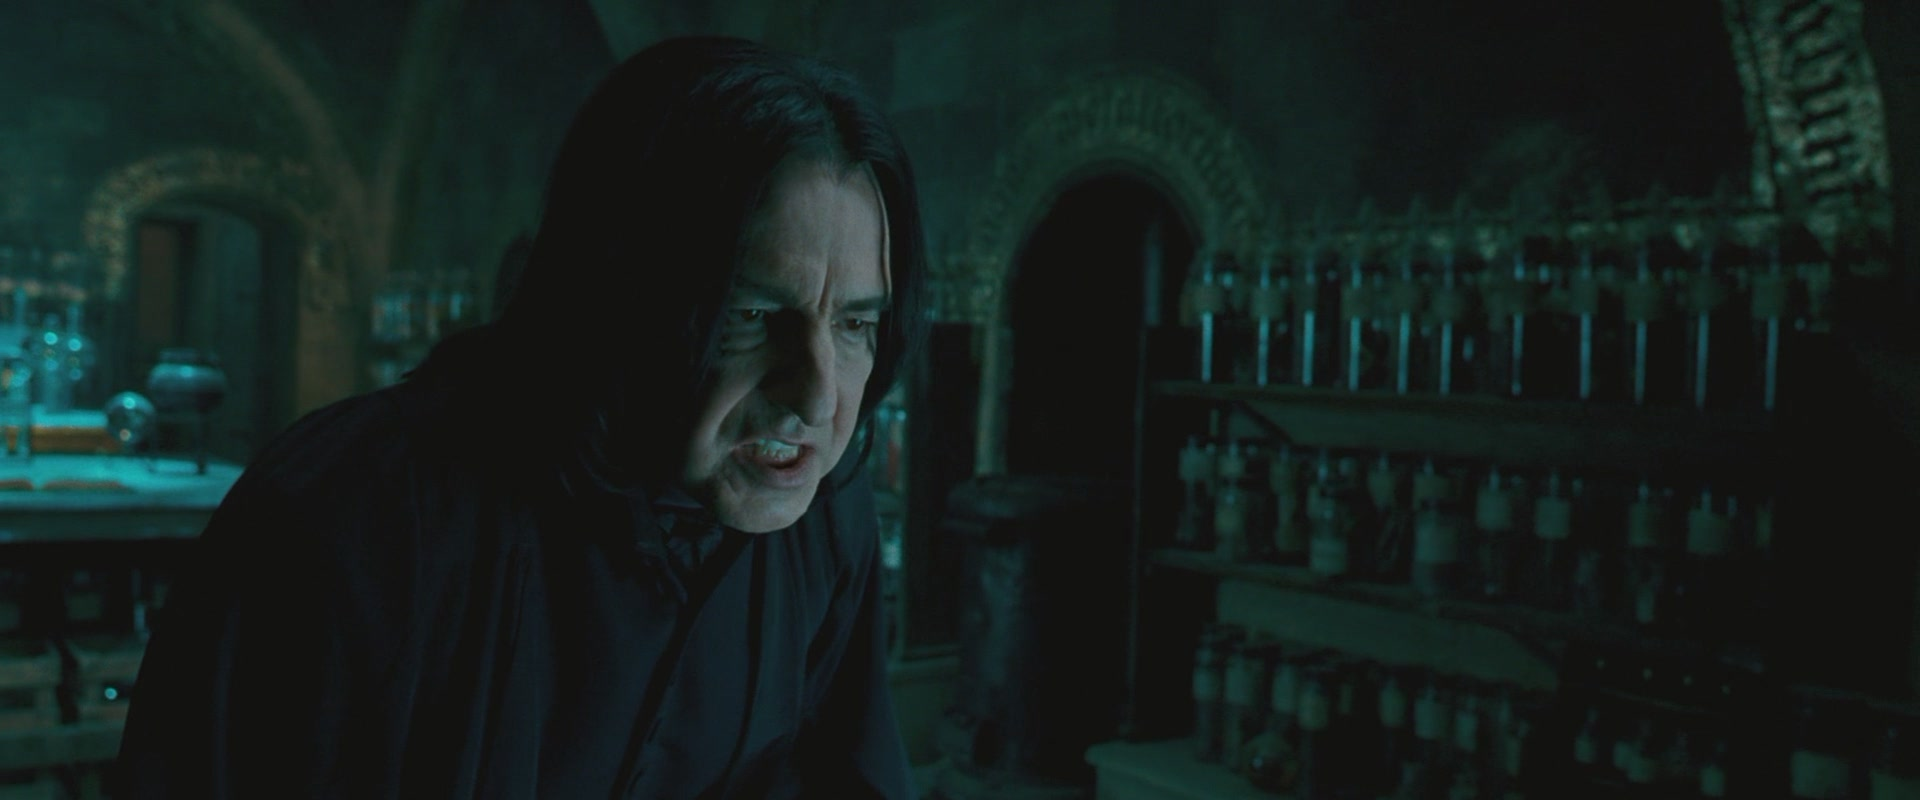 essays on severus snape I need an essay on severus snape, but not about him being a vampire, it's for class, so if anyone could refer to a good one i would highly appreciate it.